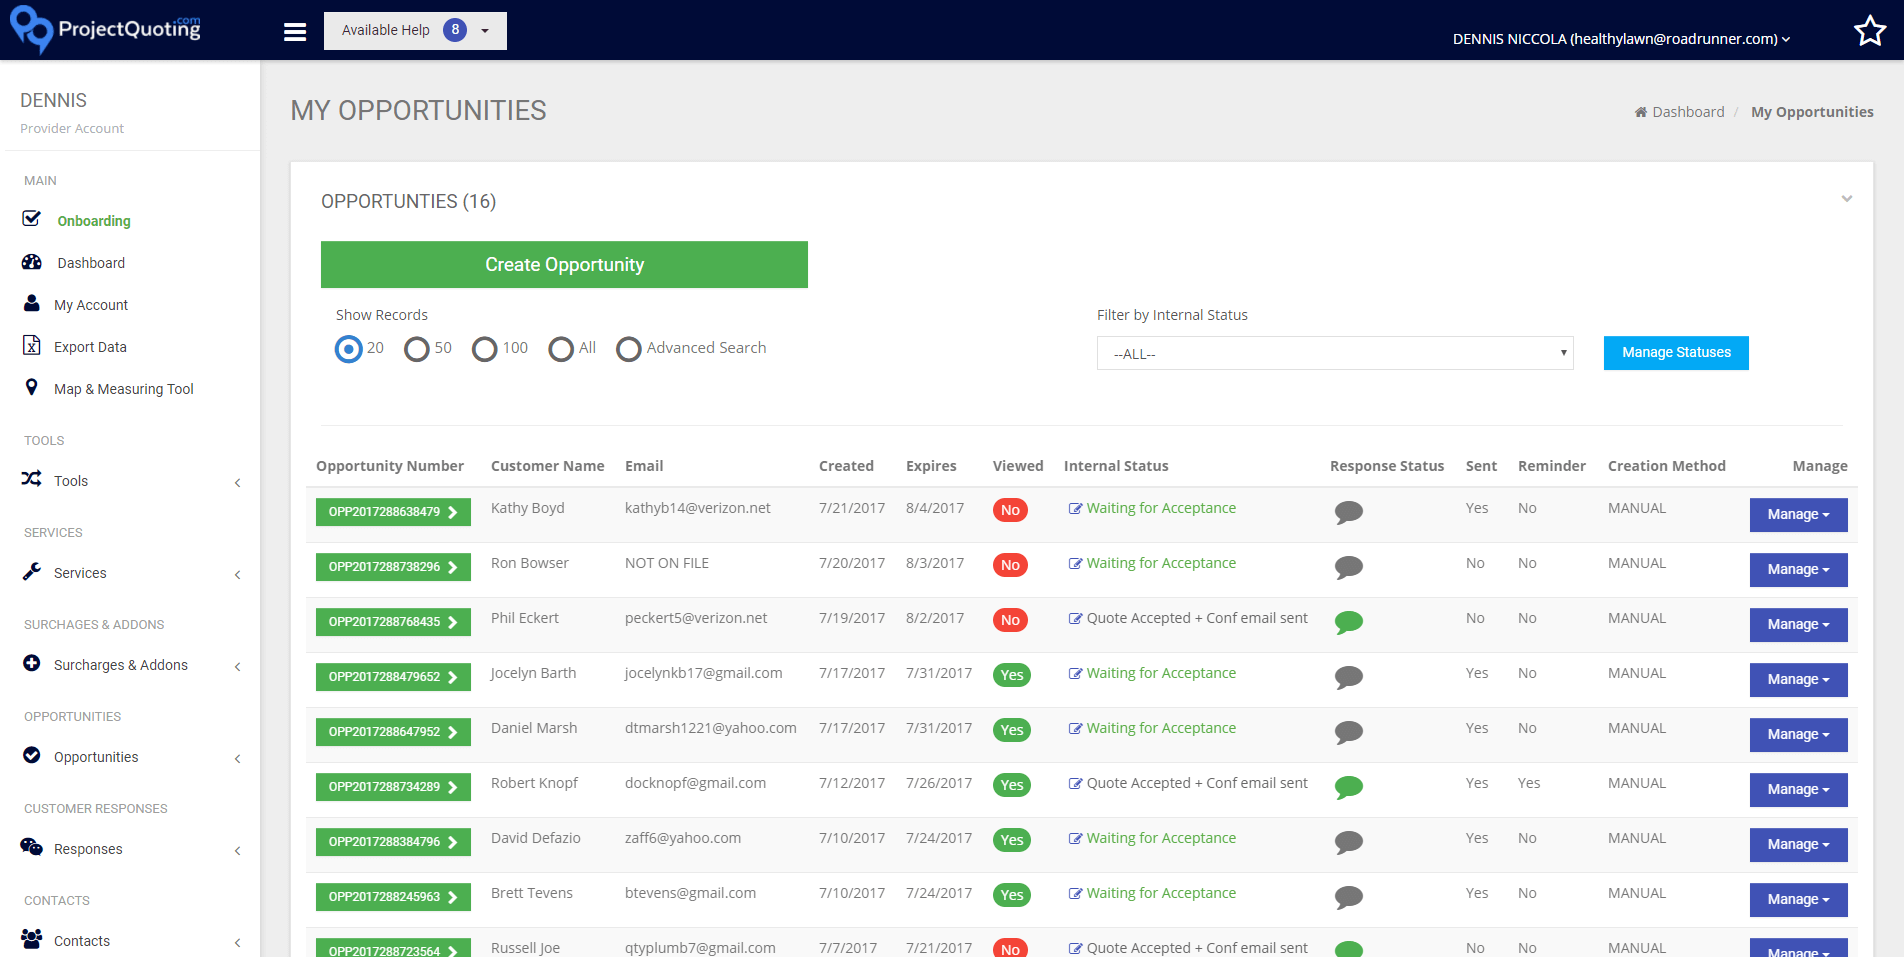 View and manage all quotes in one place